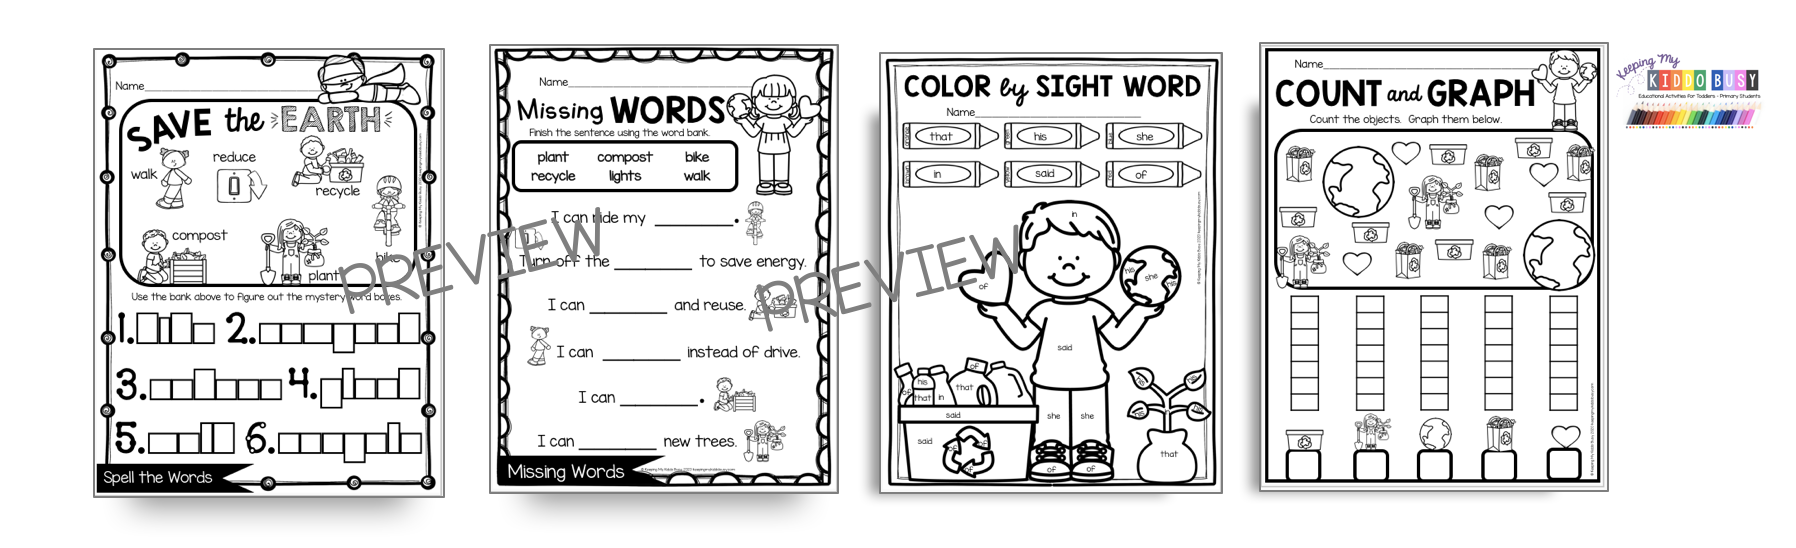 All About Planet Earth Free Activities Keeping My Kiddo Busy Earth Activities Earth Day Worksheets Free Activities [ 548 x 1796 Pixel ]